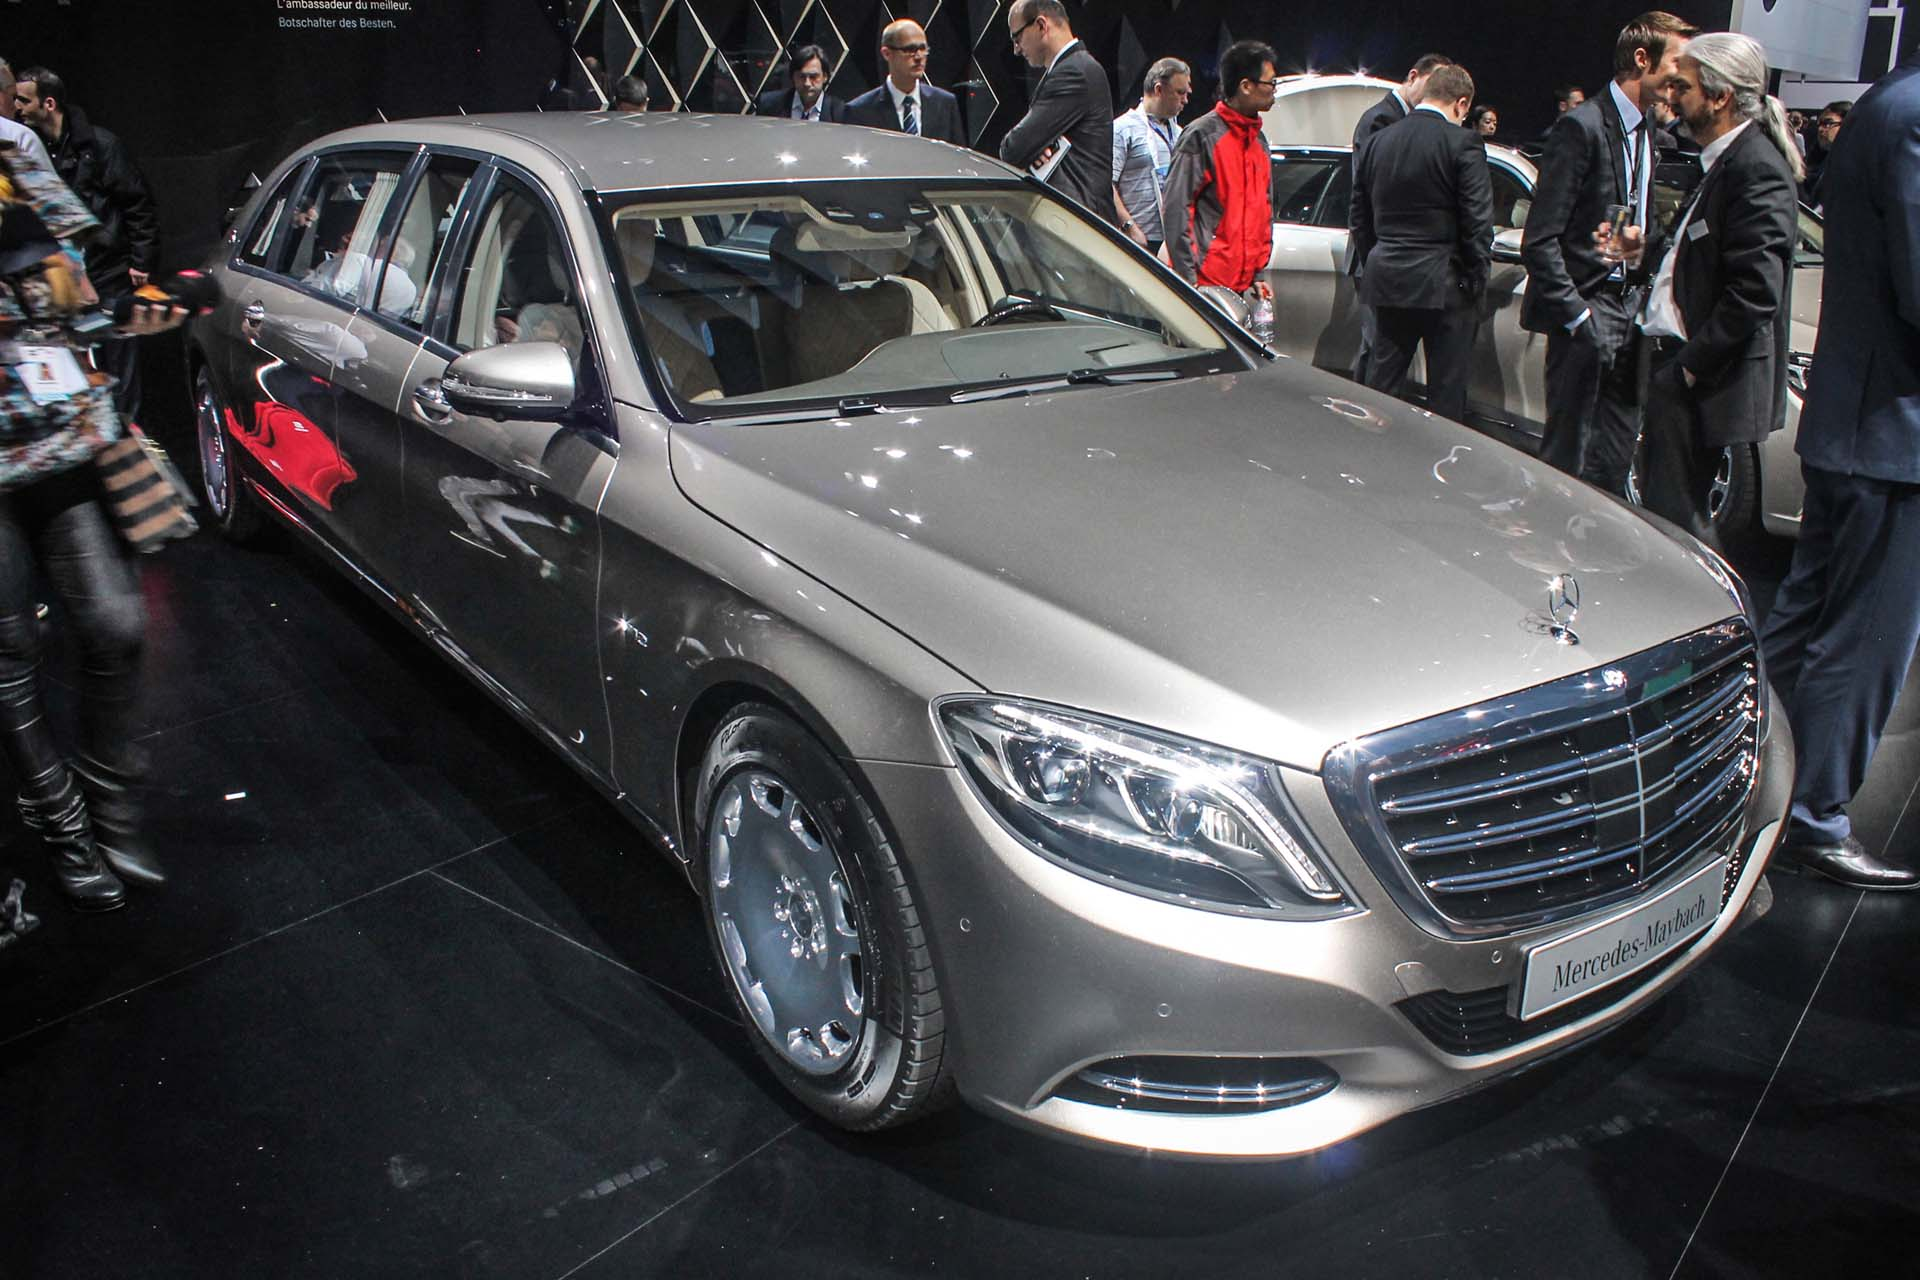 We've come a long way, Bertha. Geez, make that Big Bertha: the Mercedes-Maybach super-limo isn't just partially named after a Zeppelin engine manufacturer, it's the size of a dirigible too. From that original, single-cylinder vehicle to a massive opulent palace on wheels, Mercedes continues to be at the highest echelons of what's available in an automobile. Nowadays, though, you can get somebody to drive for you.